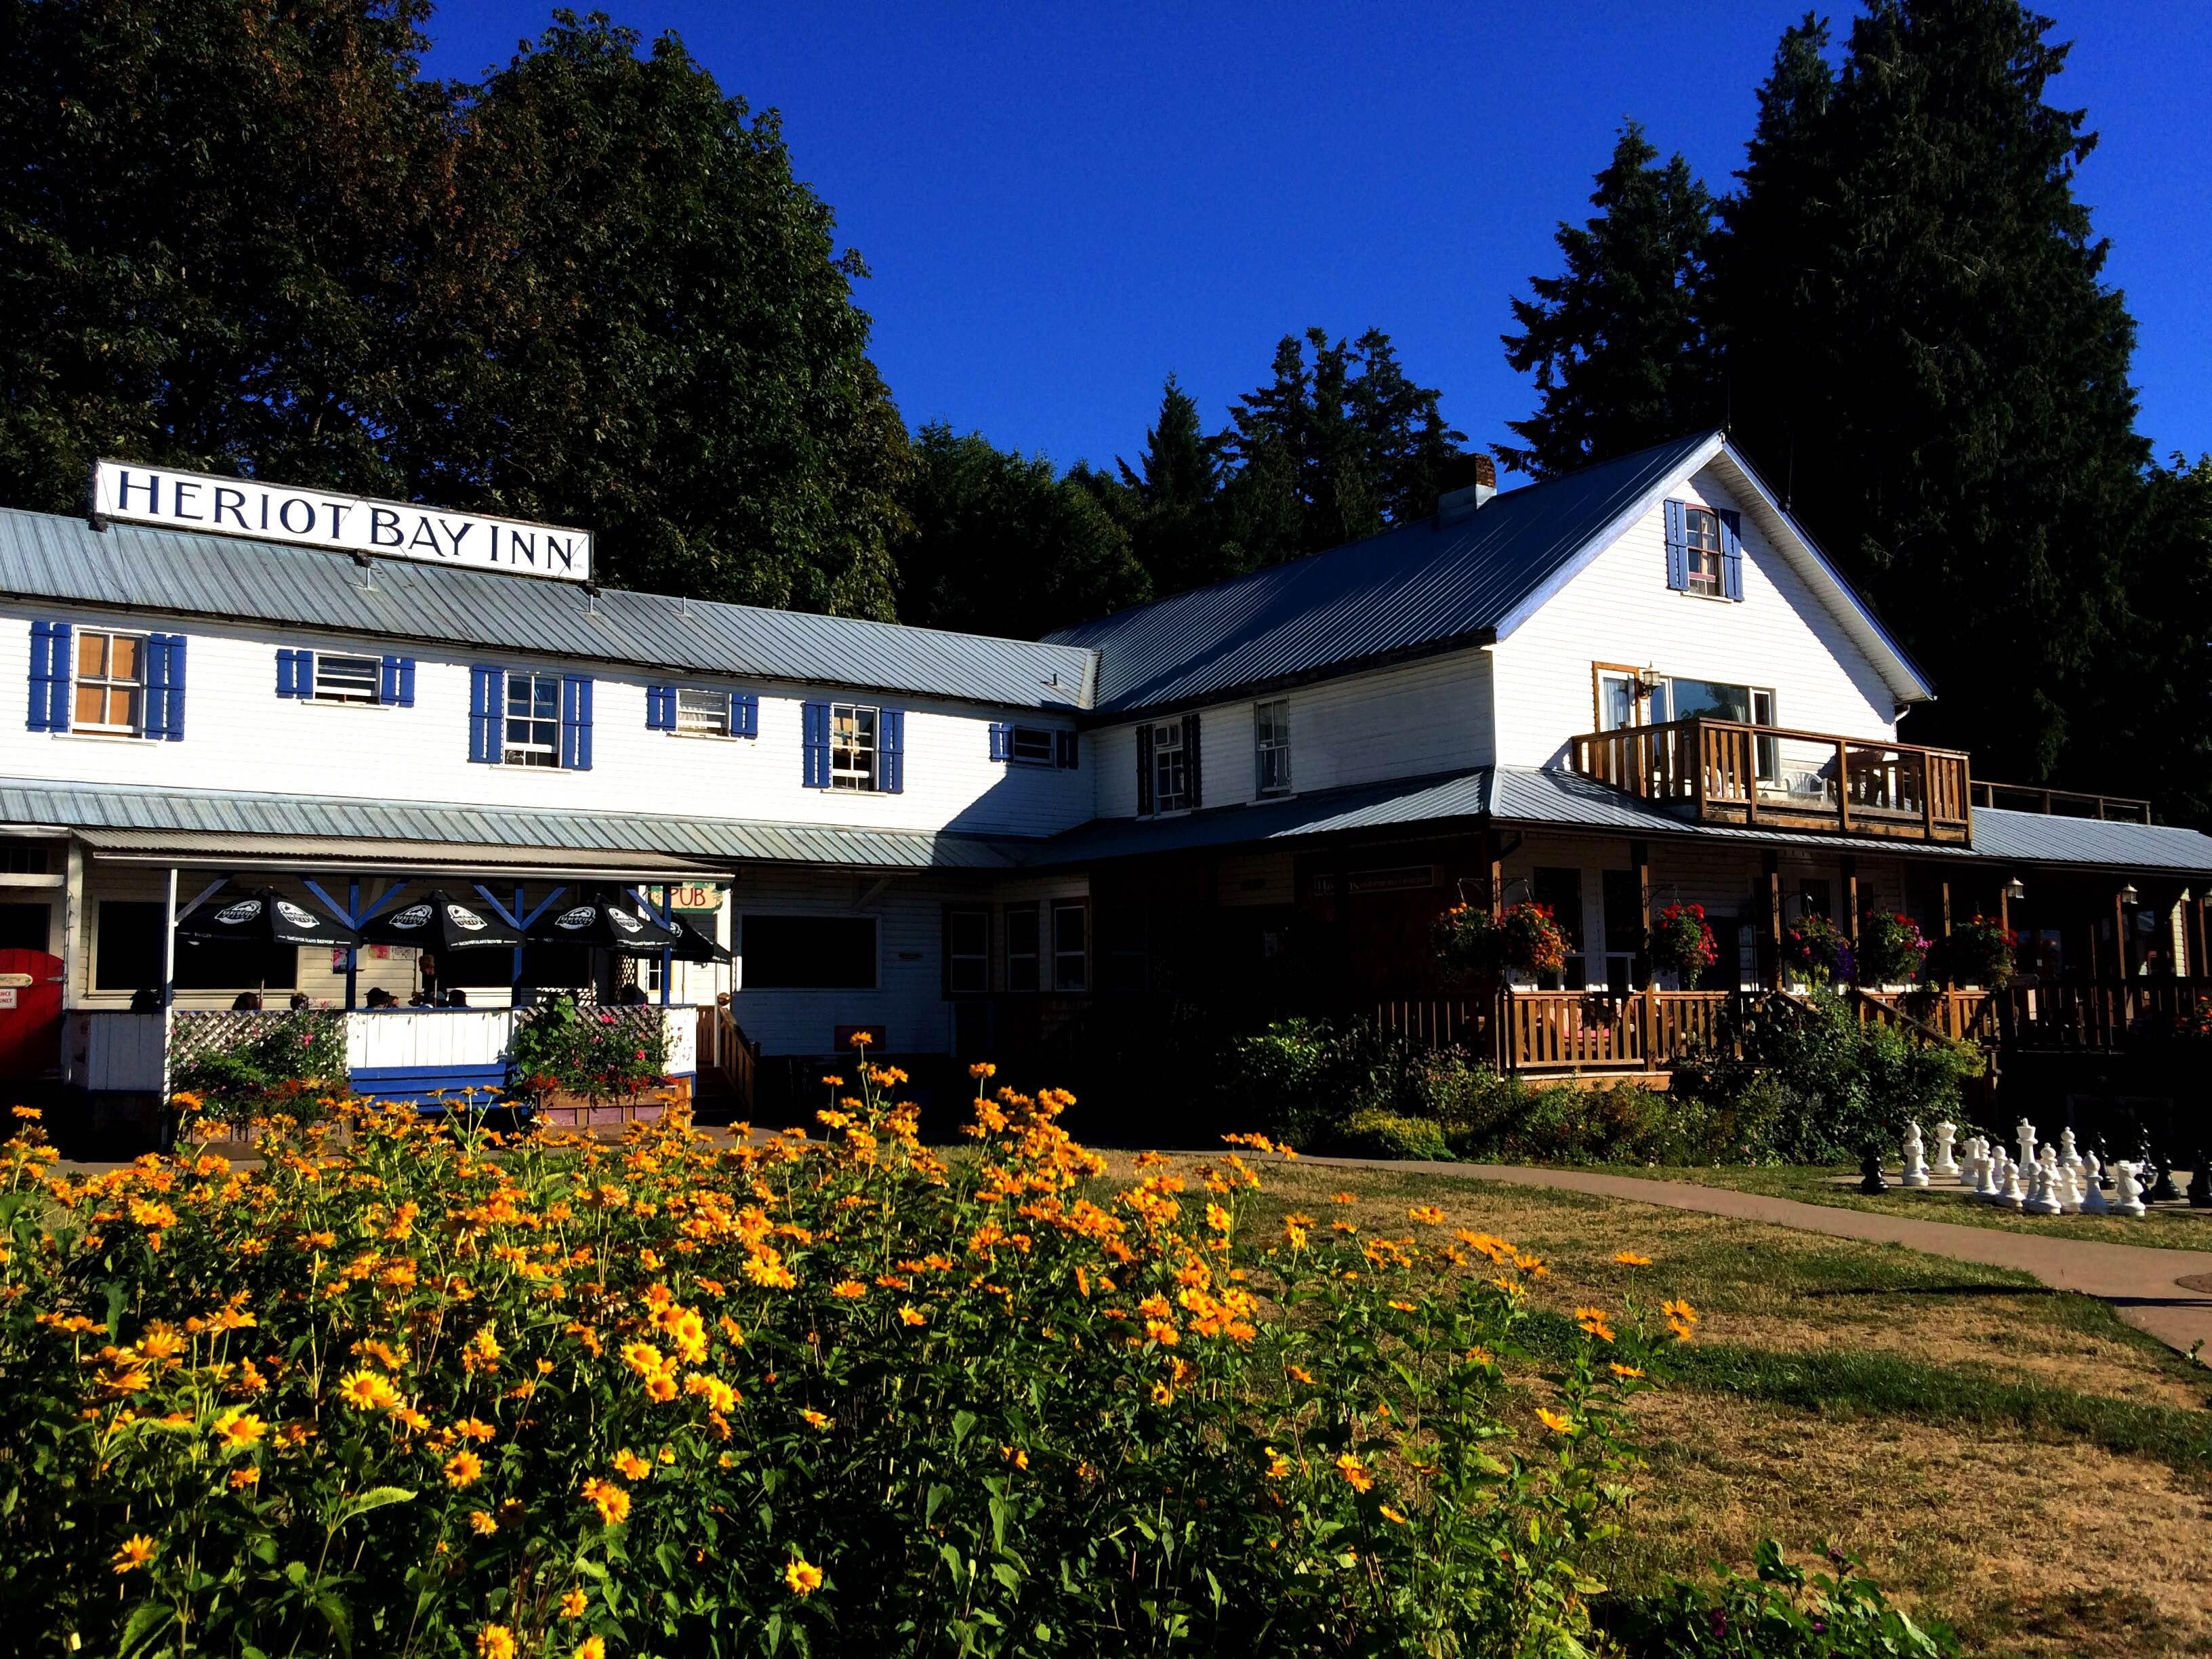 heriot bay chatrooms Quadra island inn hotel, accommodations, restaurant, pub, rv park,  campground, heriot bay marina vancouver island campground & rv park  vacations.